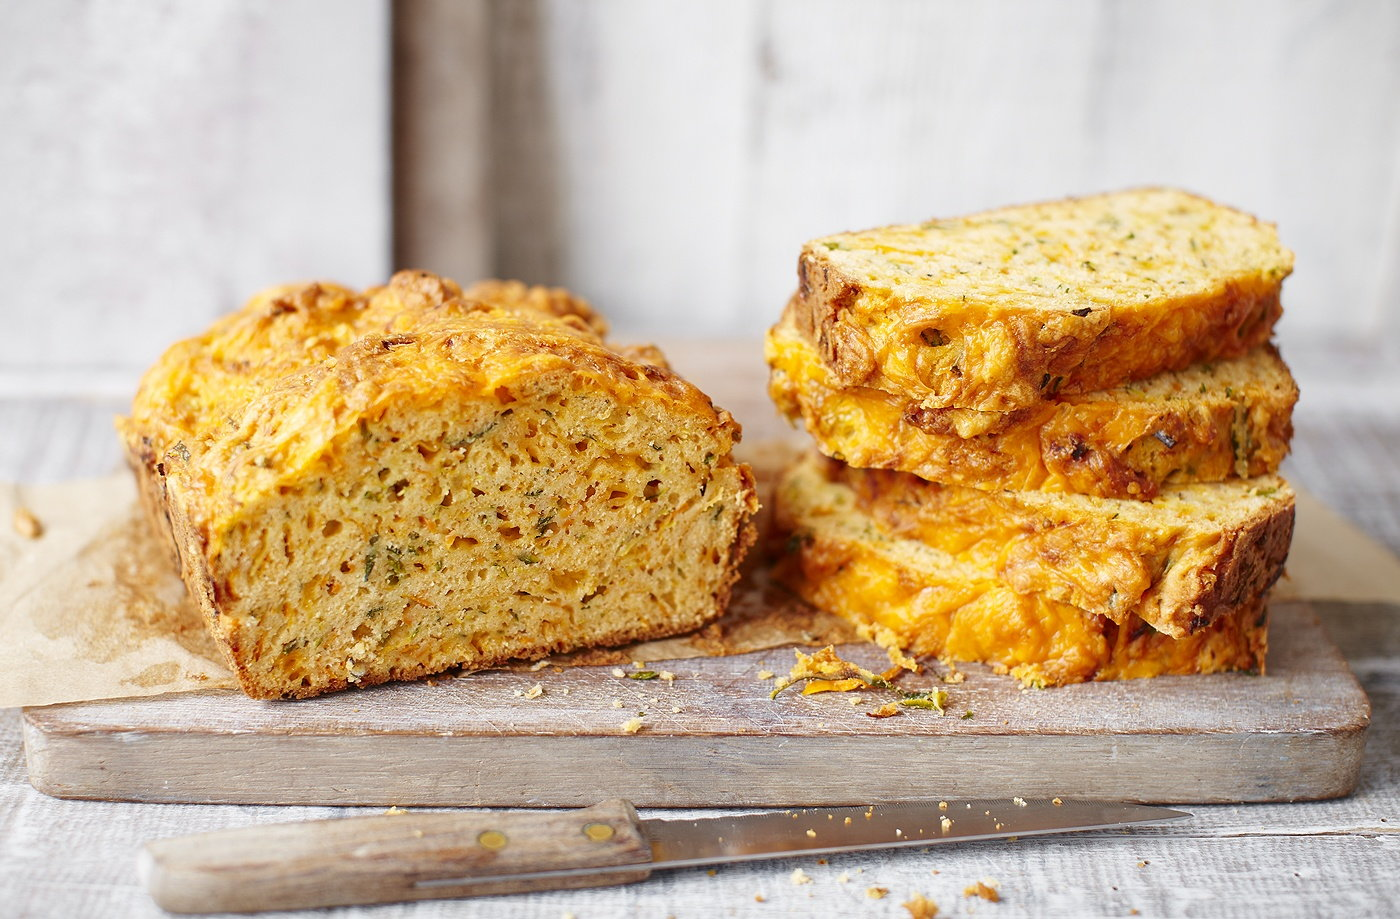 Courgette and carrot bread recipe